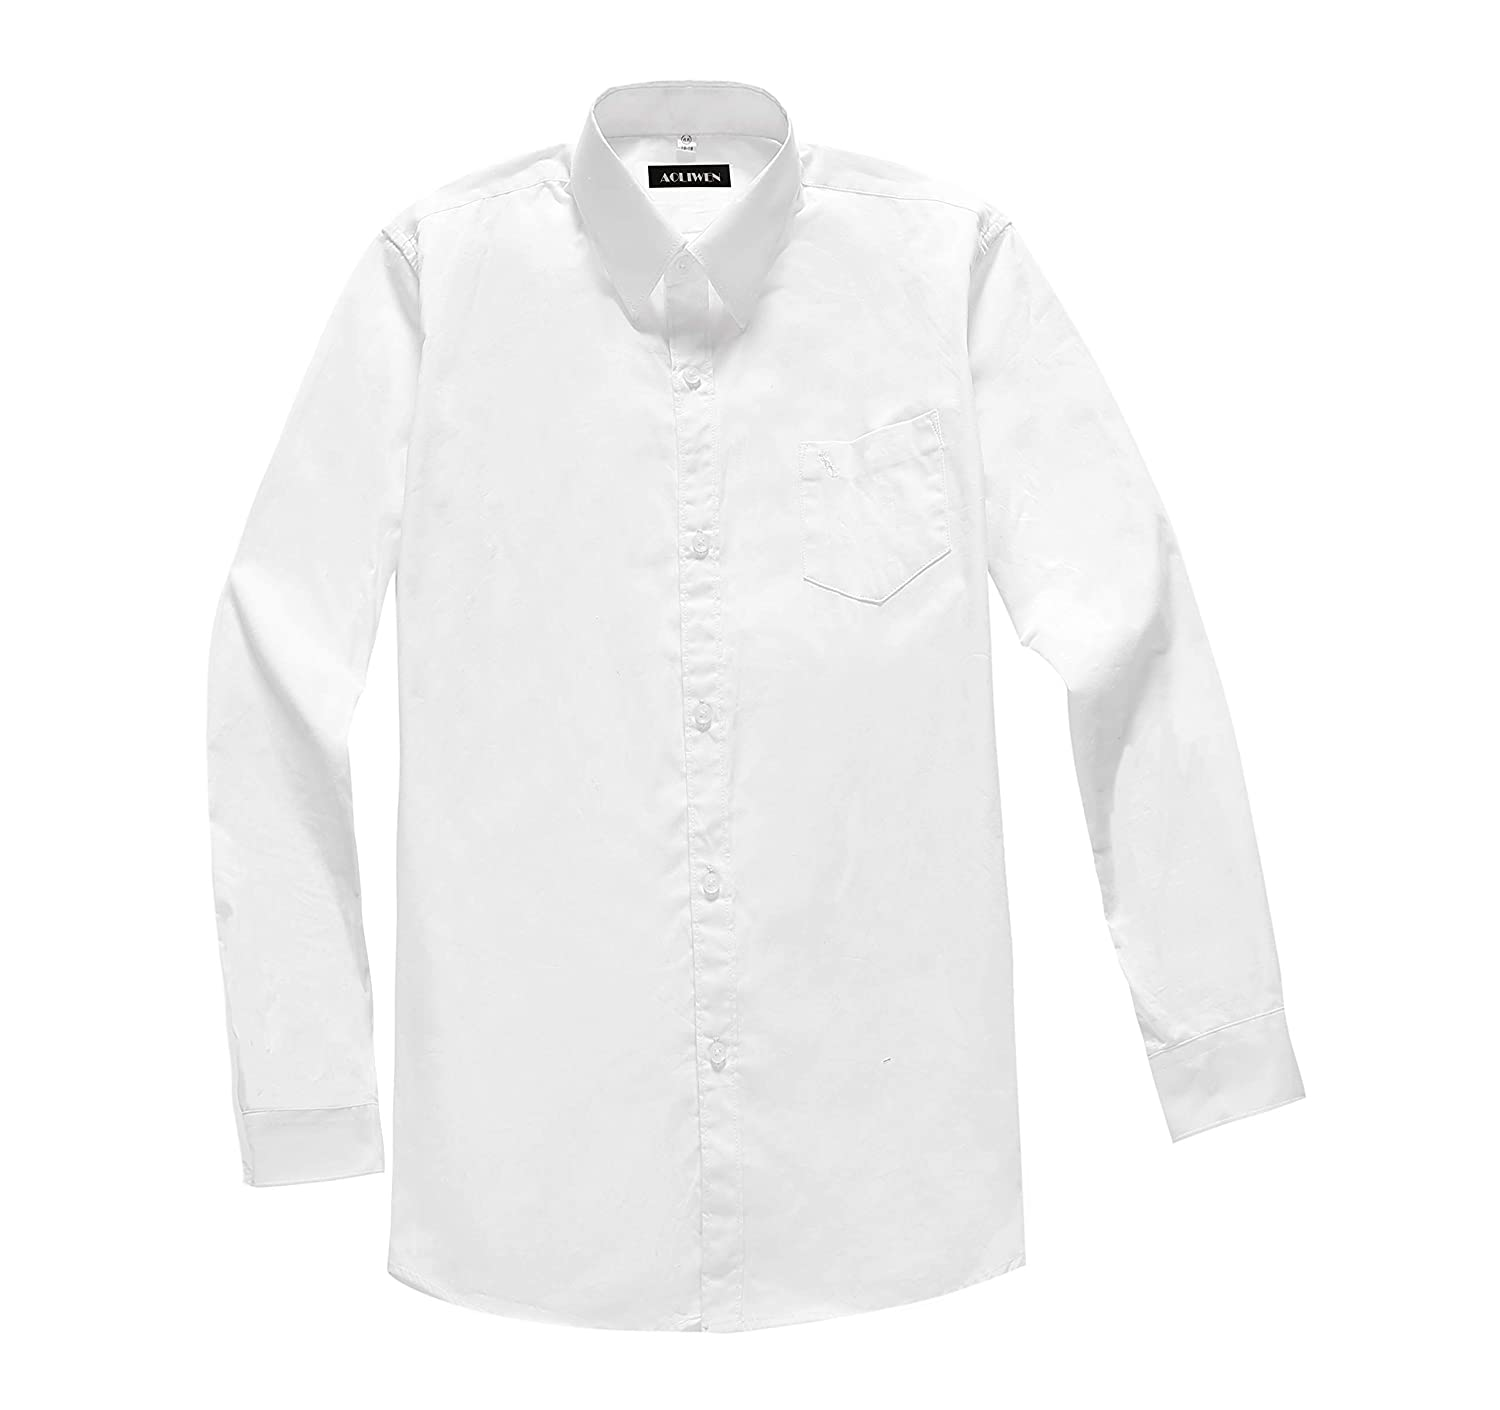 AOLIWEN Boy's Solid Long Sleeve White Dress Shirt School Uniform Shirts 3-16 Years